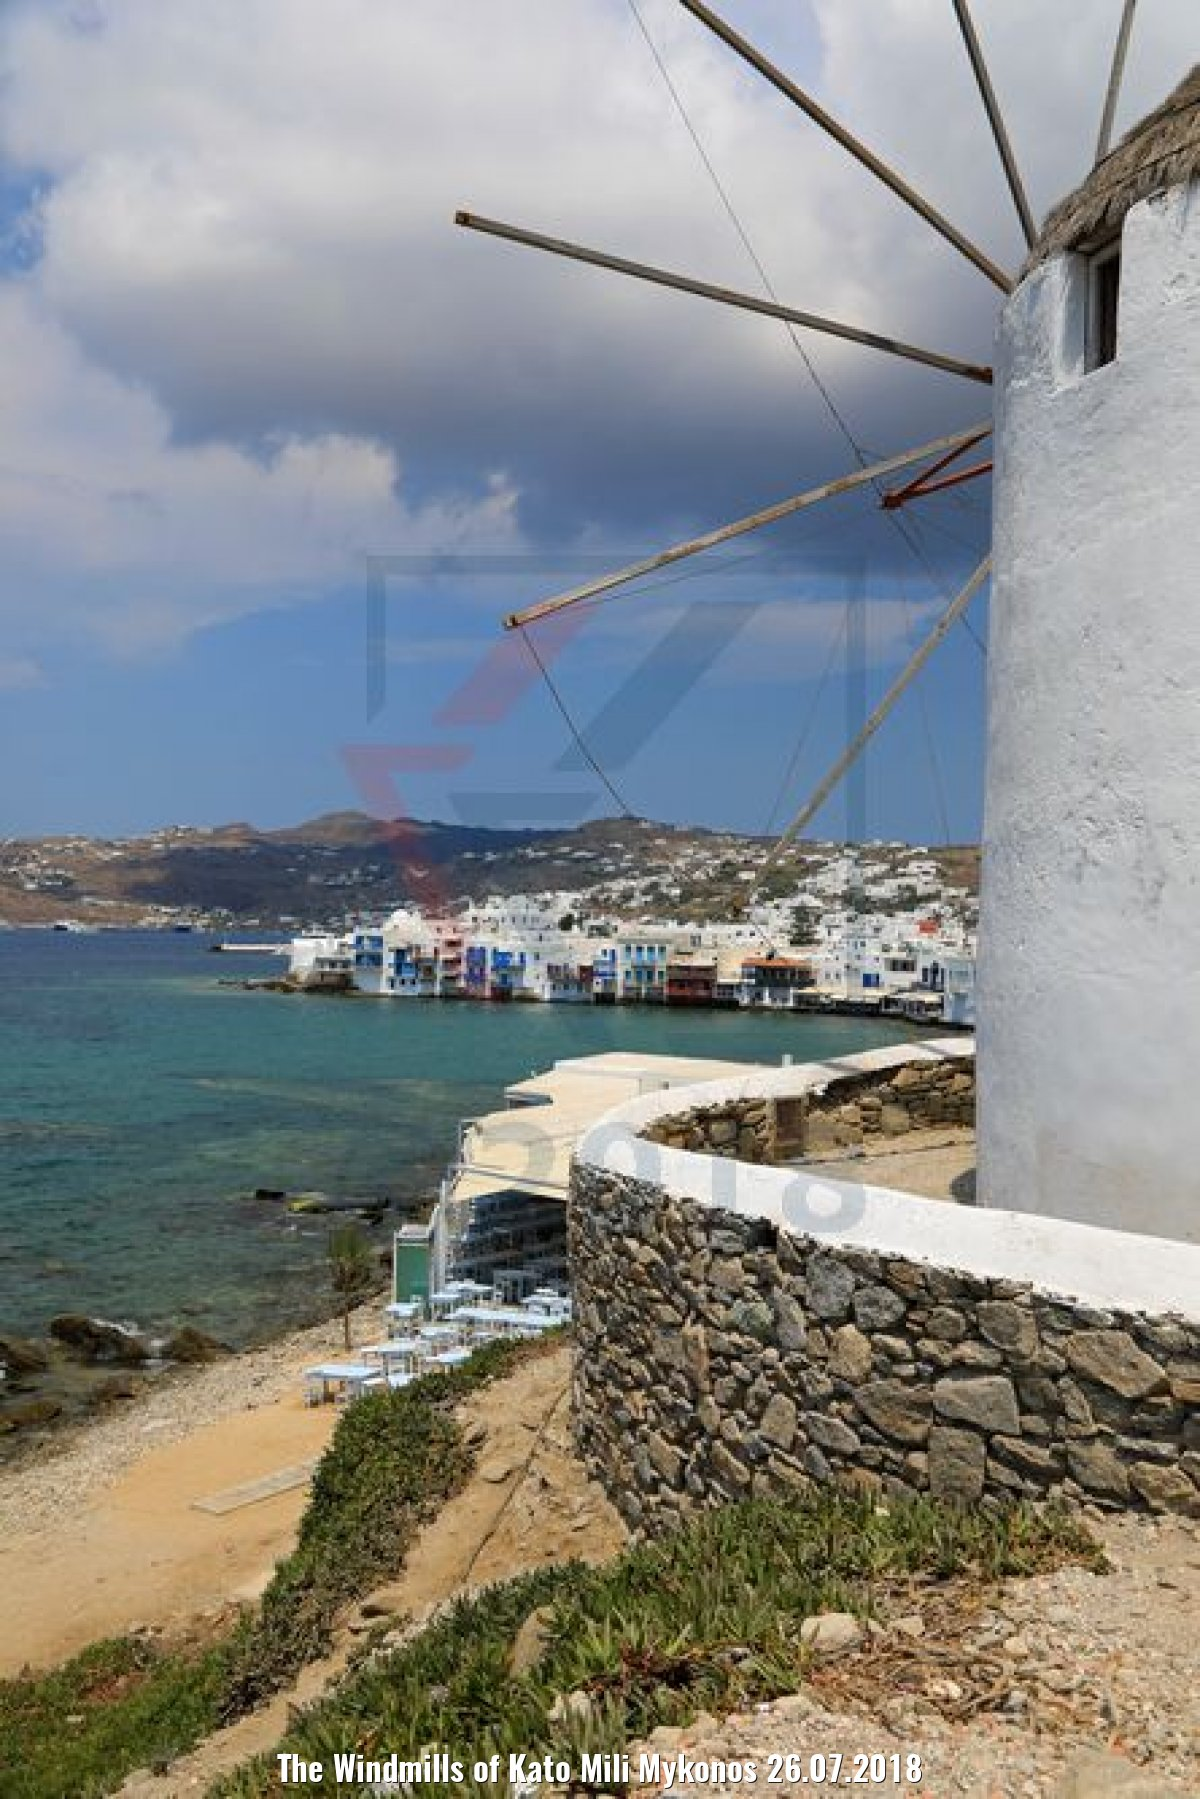 The Windmills of Kato Mili Mykonos 26.07.2018